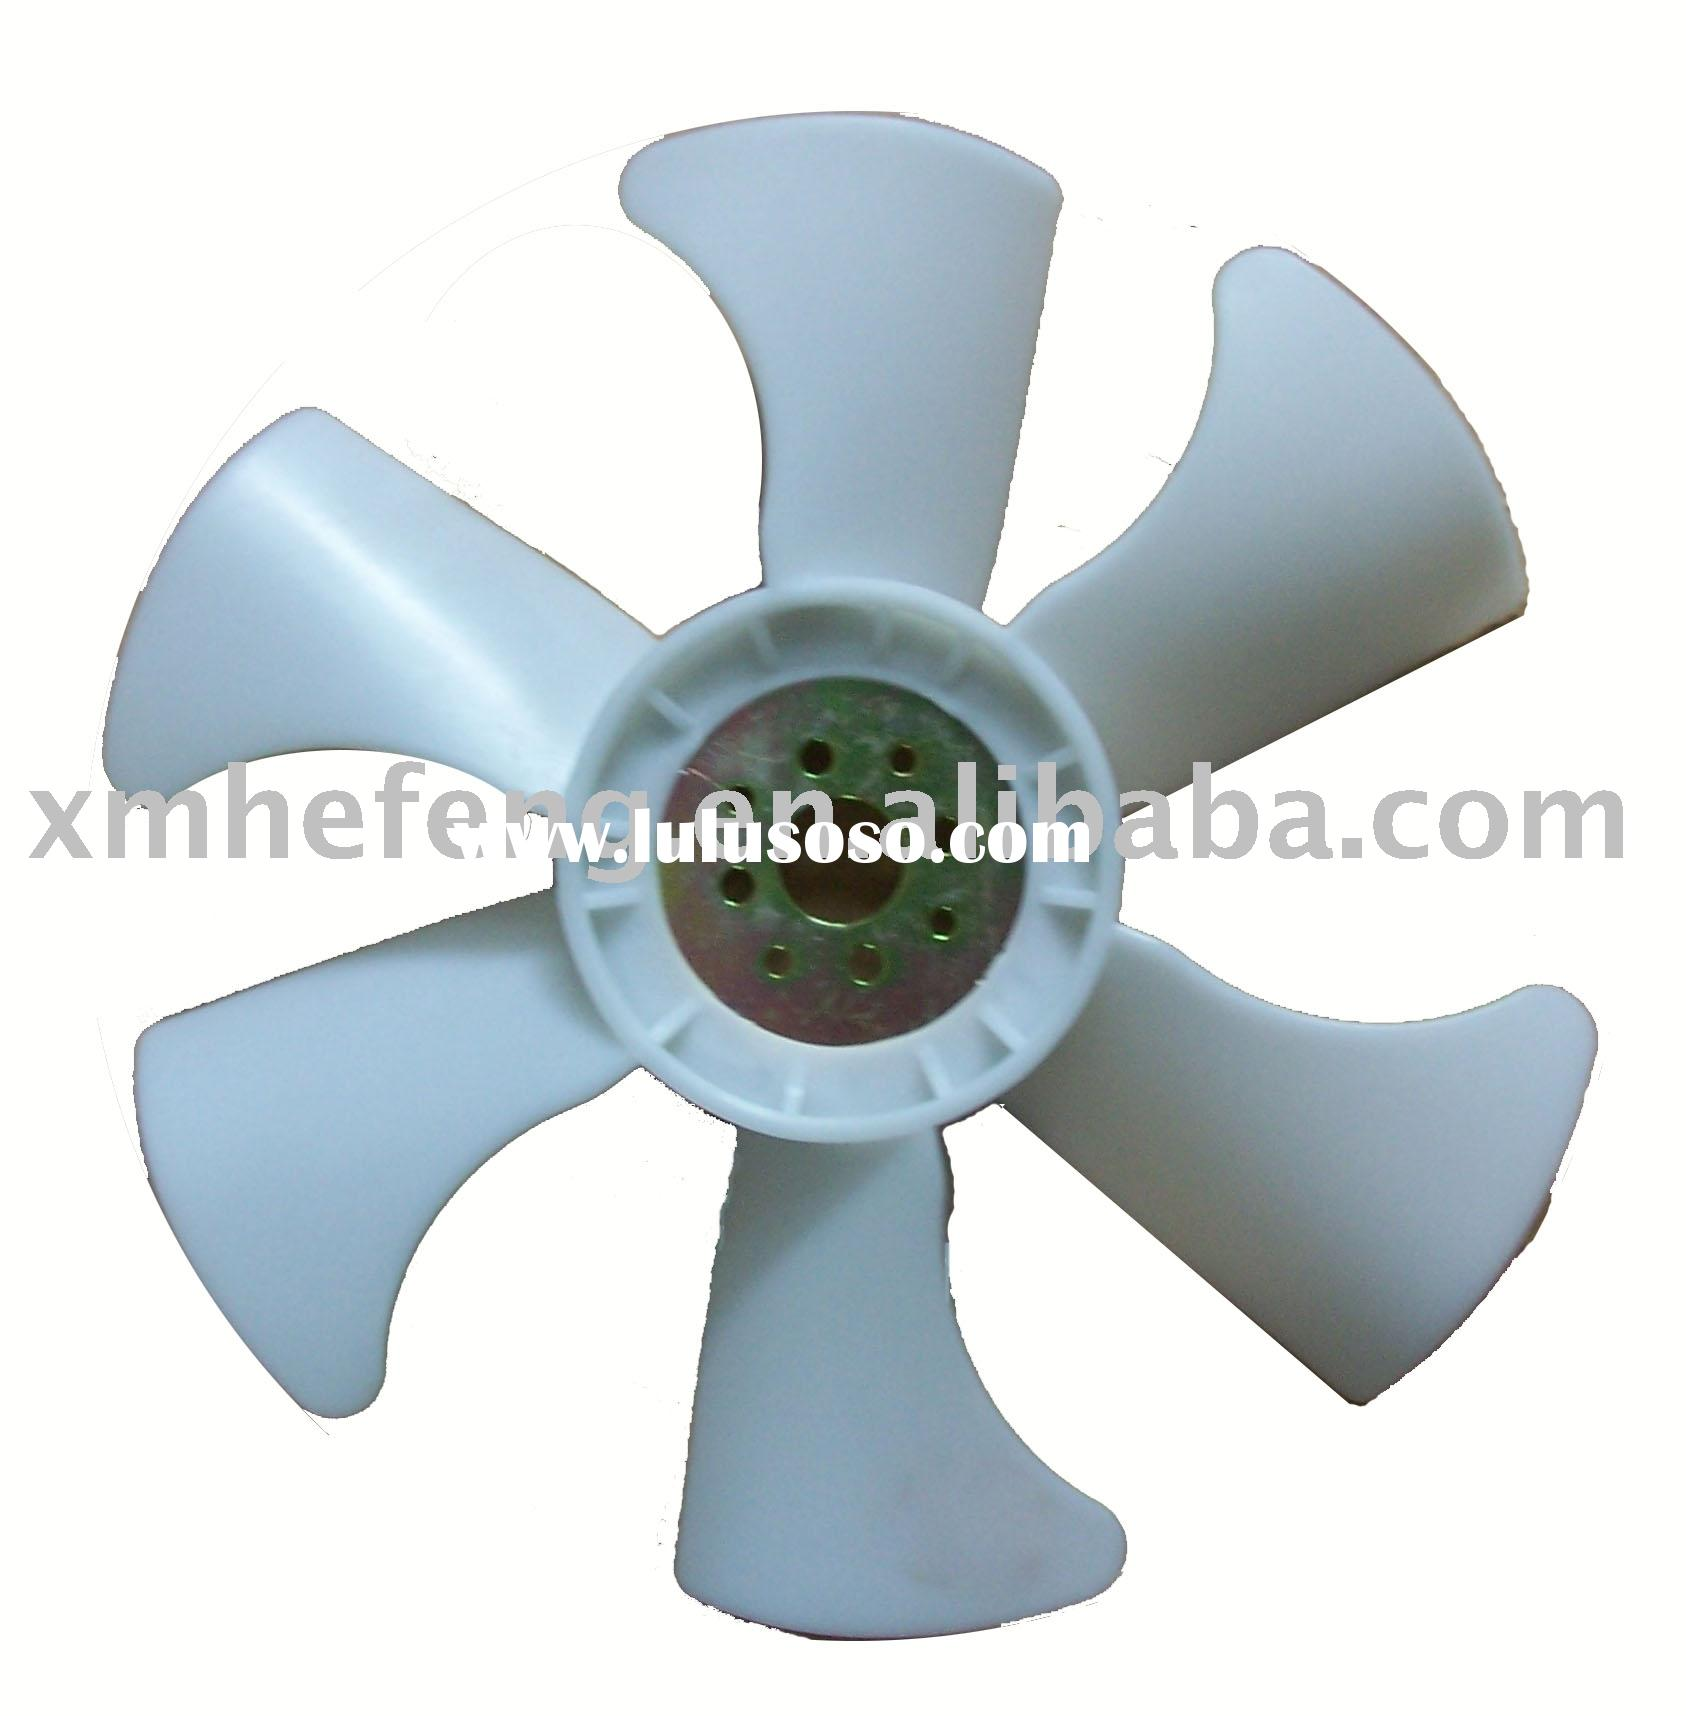 Fan Blade, auto cooling fan blade, ventilation fan blade, engine fan blade, cooling fan